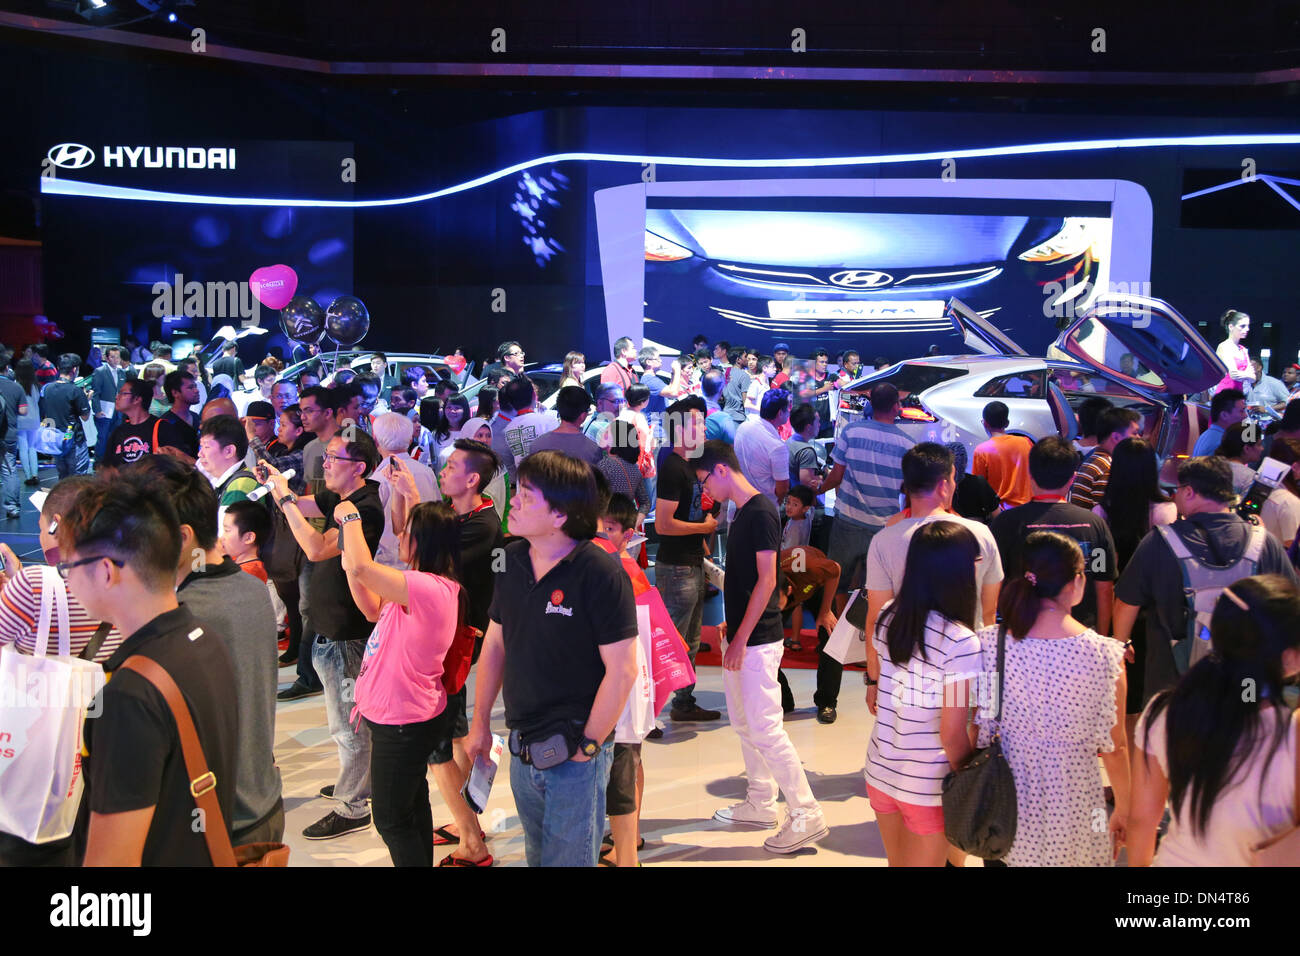 Crowd at KL International Motorshow (KLIMS) 2013. - Stock Image